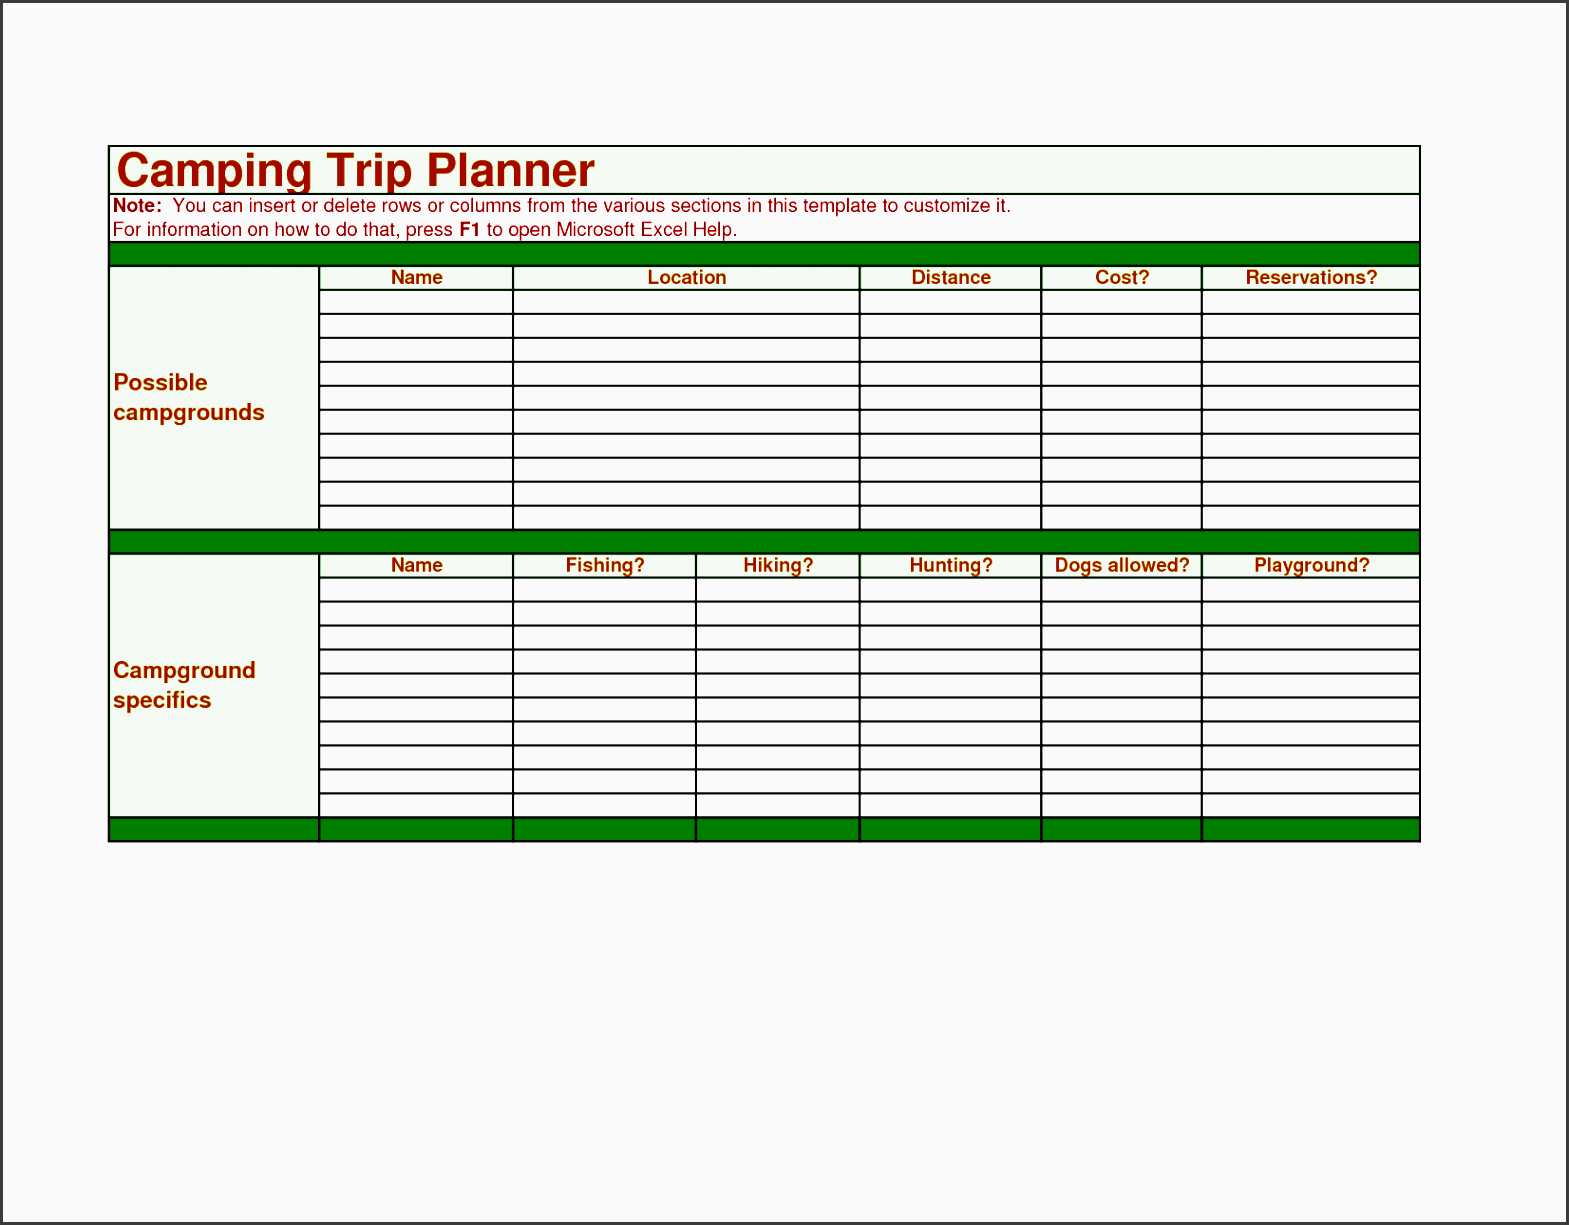 images camping trip planner as excel camping trip planner